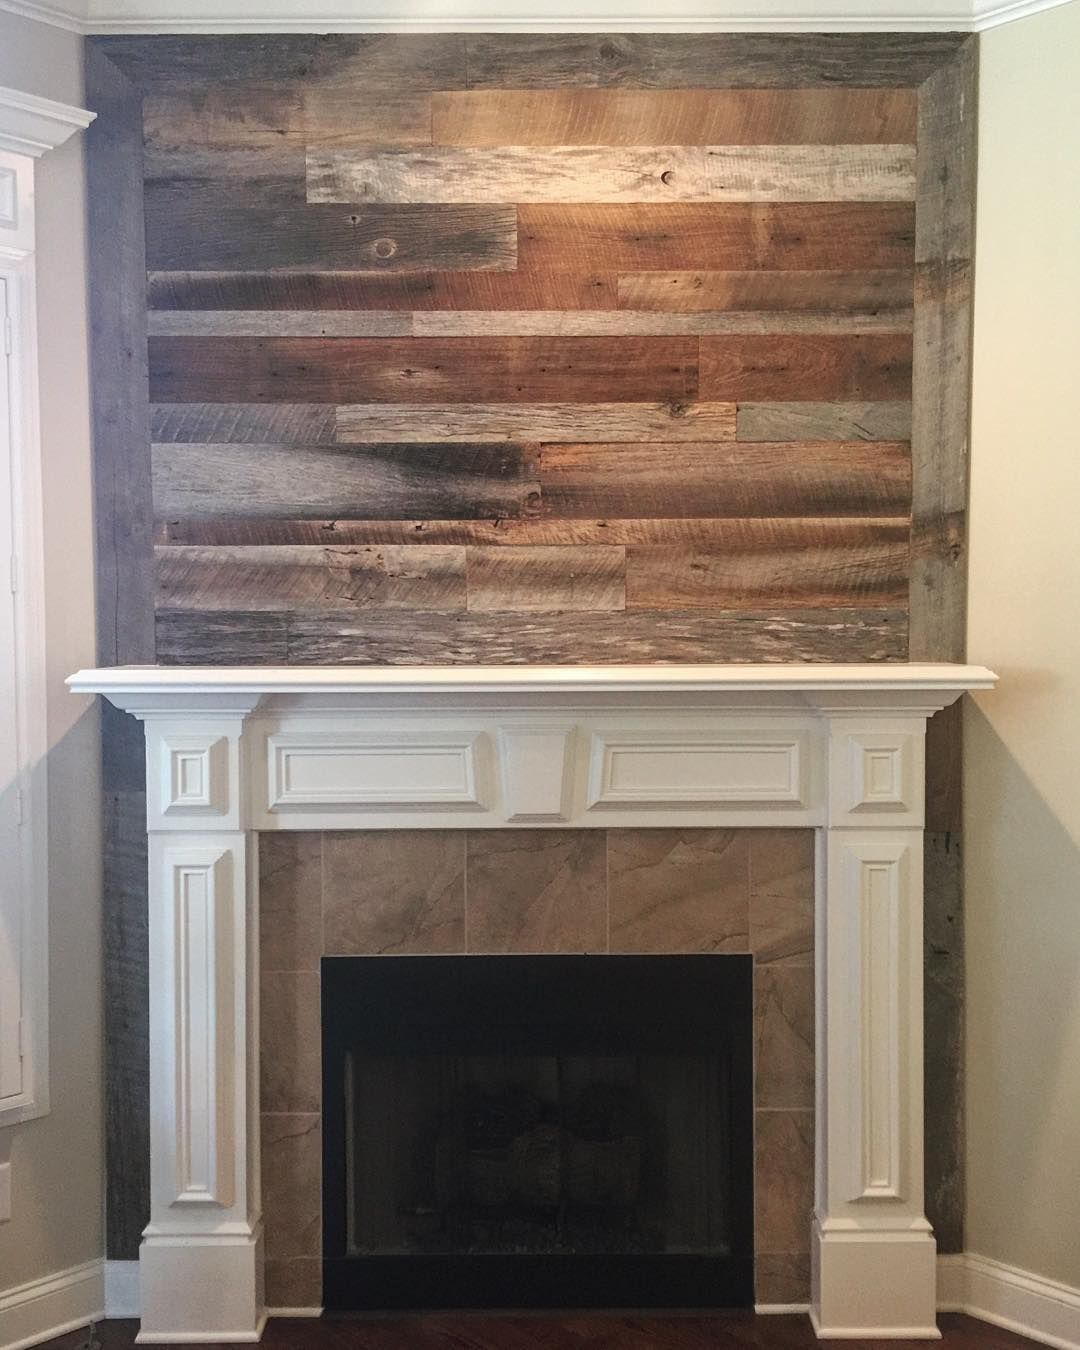 Buy And Sell Fireplace Accent Wall: UrbanwoodcoWe Just Wrapped Up This Barn Wood Accent Wall